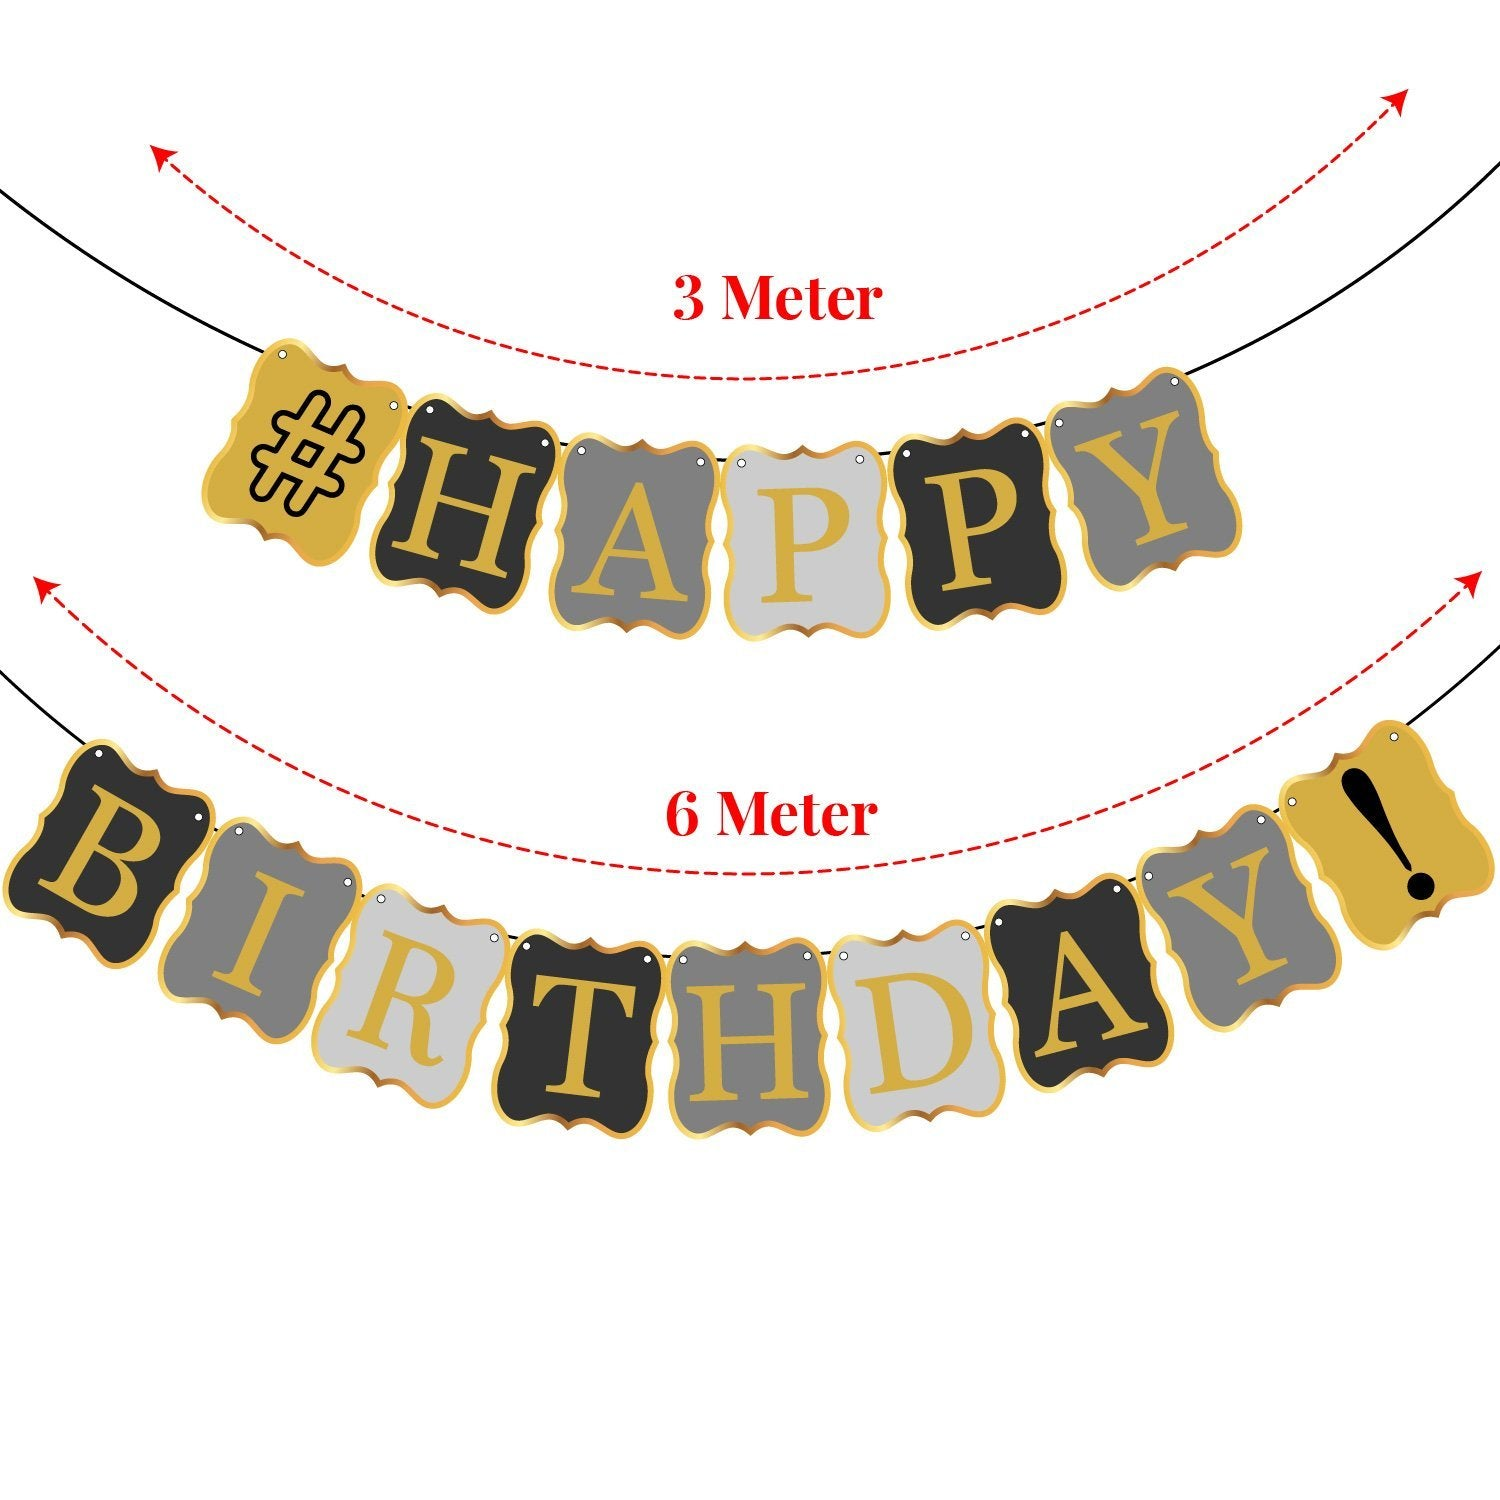 40th BIRTHDAY DECORATIONS BALLOONS BANNER Happy Birthday Black